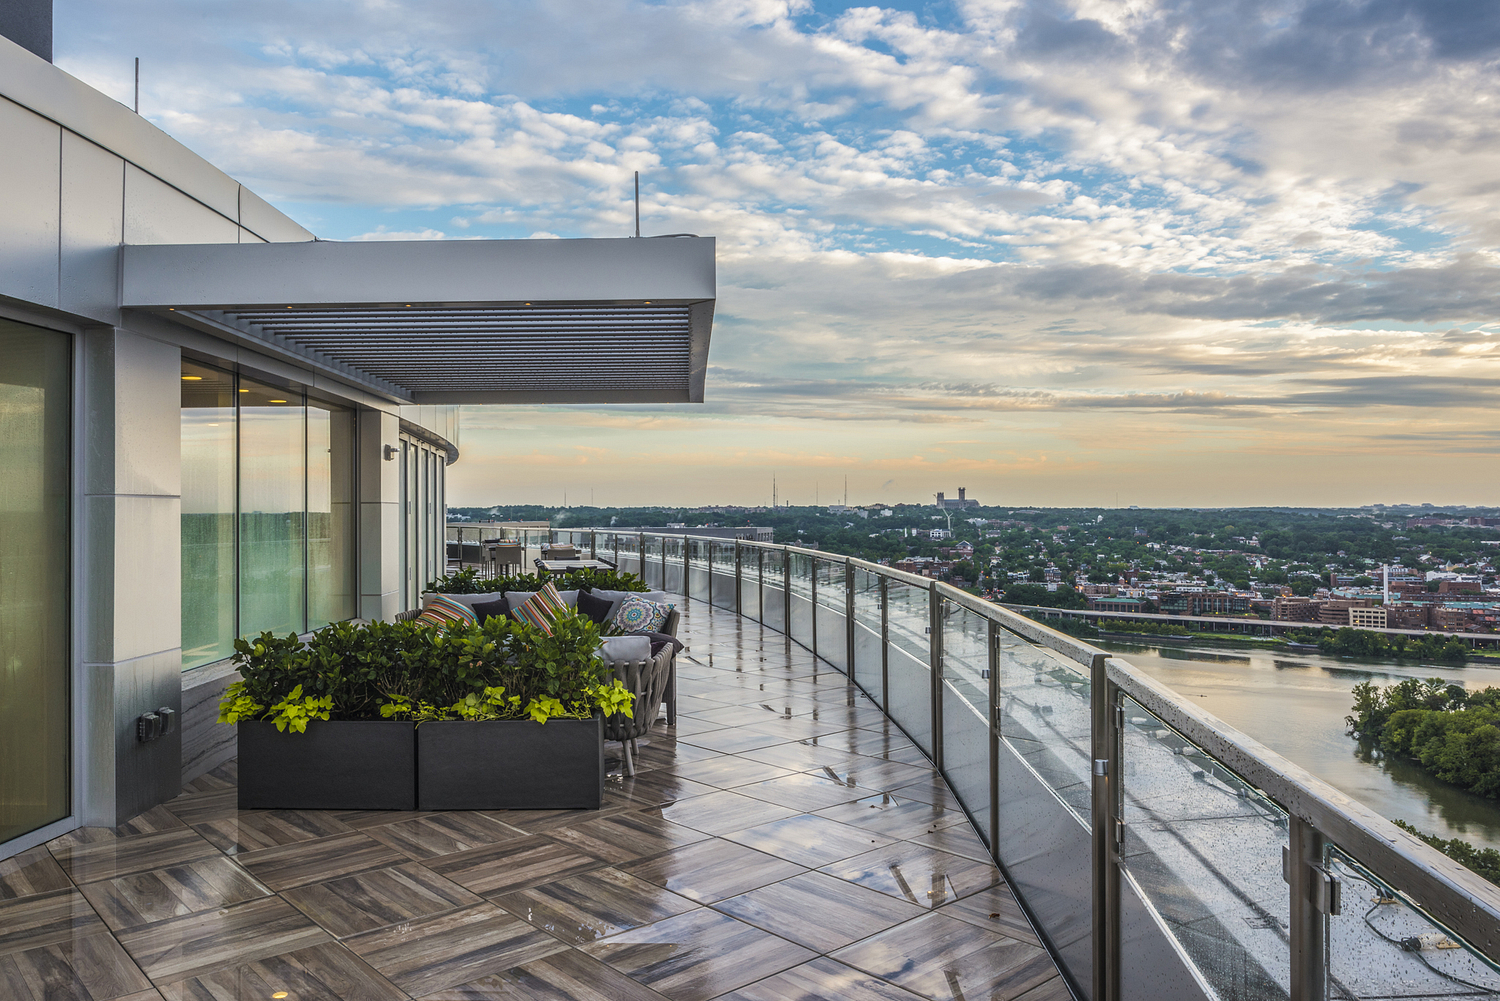 Rooftop breakout area, 32nd floor, commercial office building, Washington DC